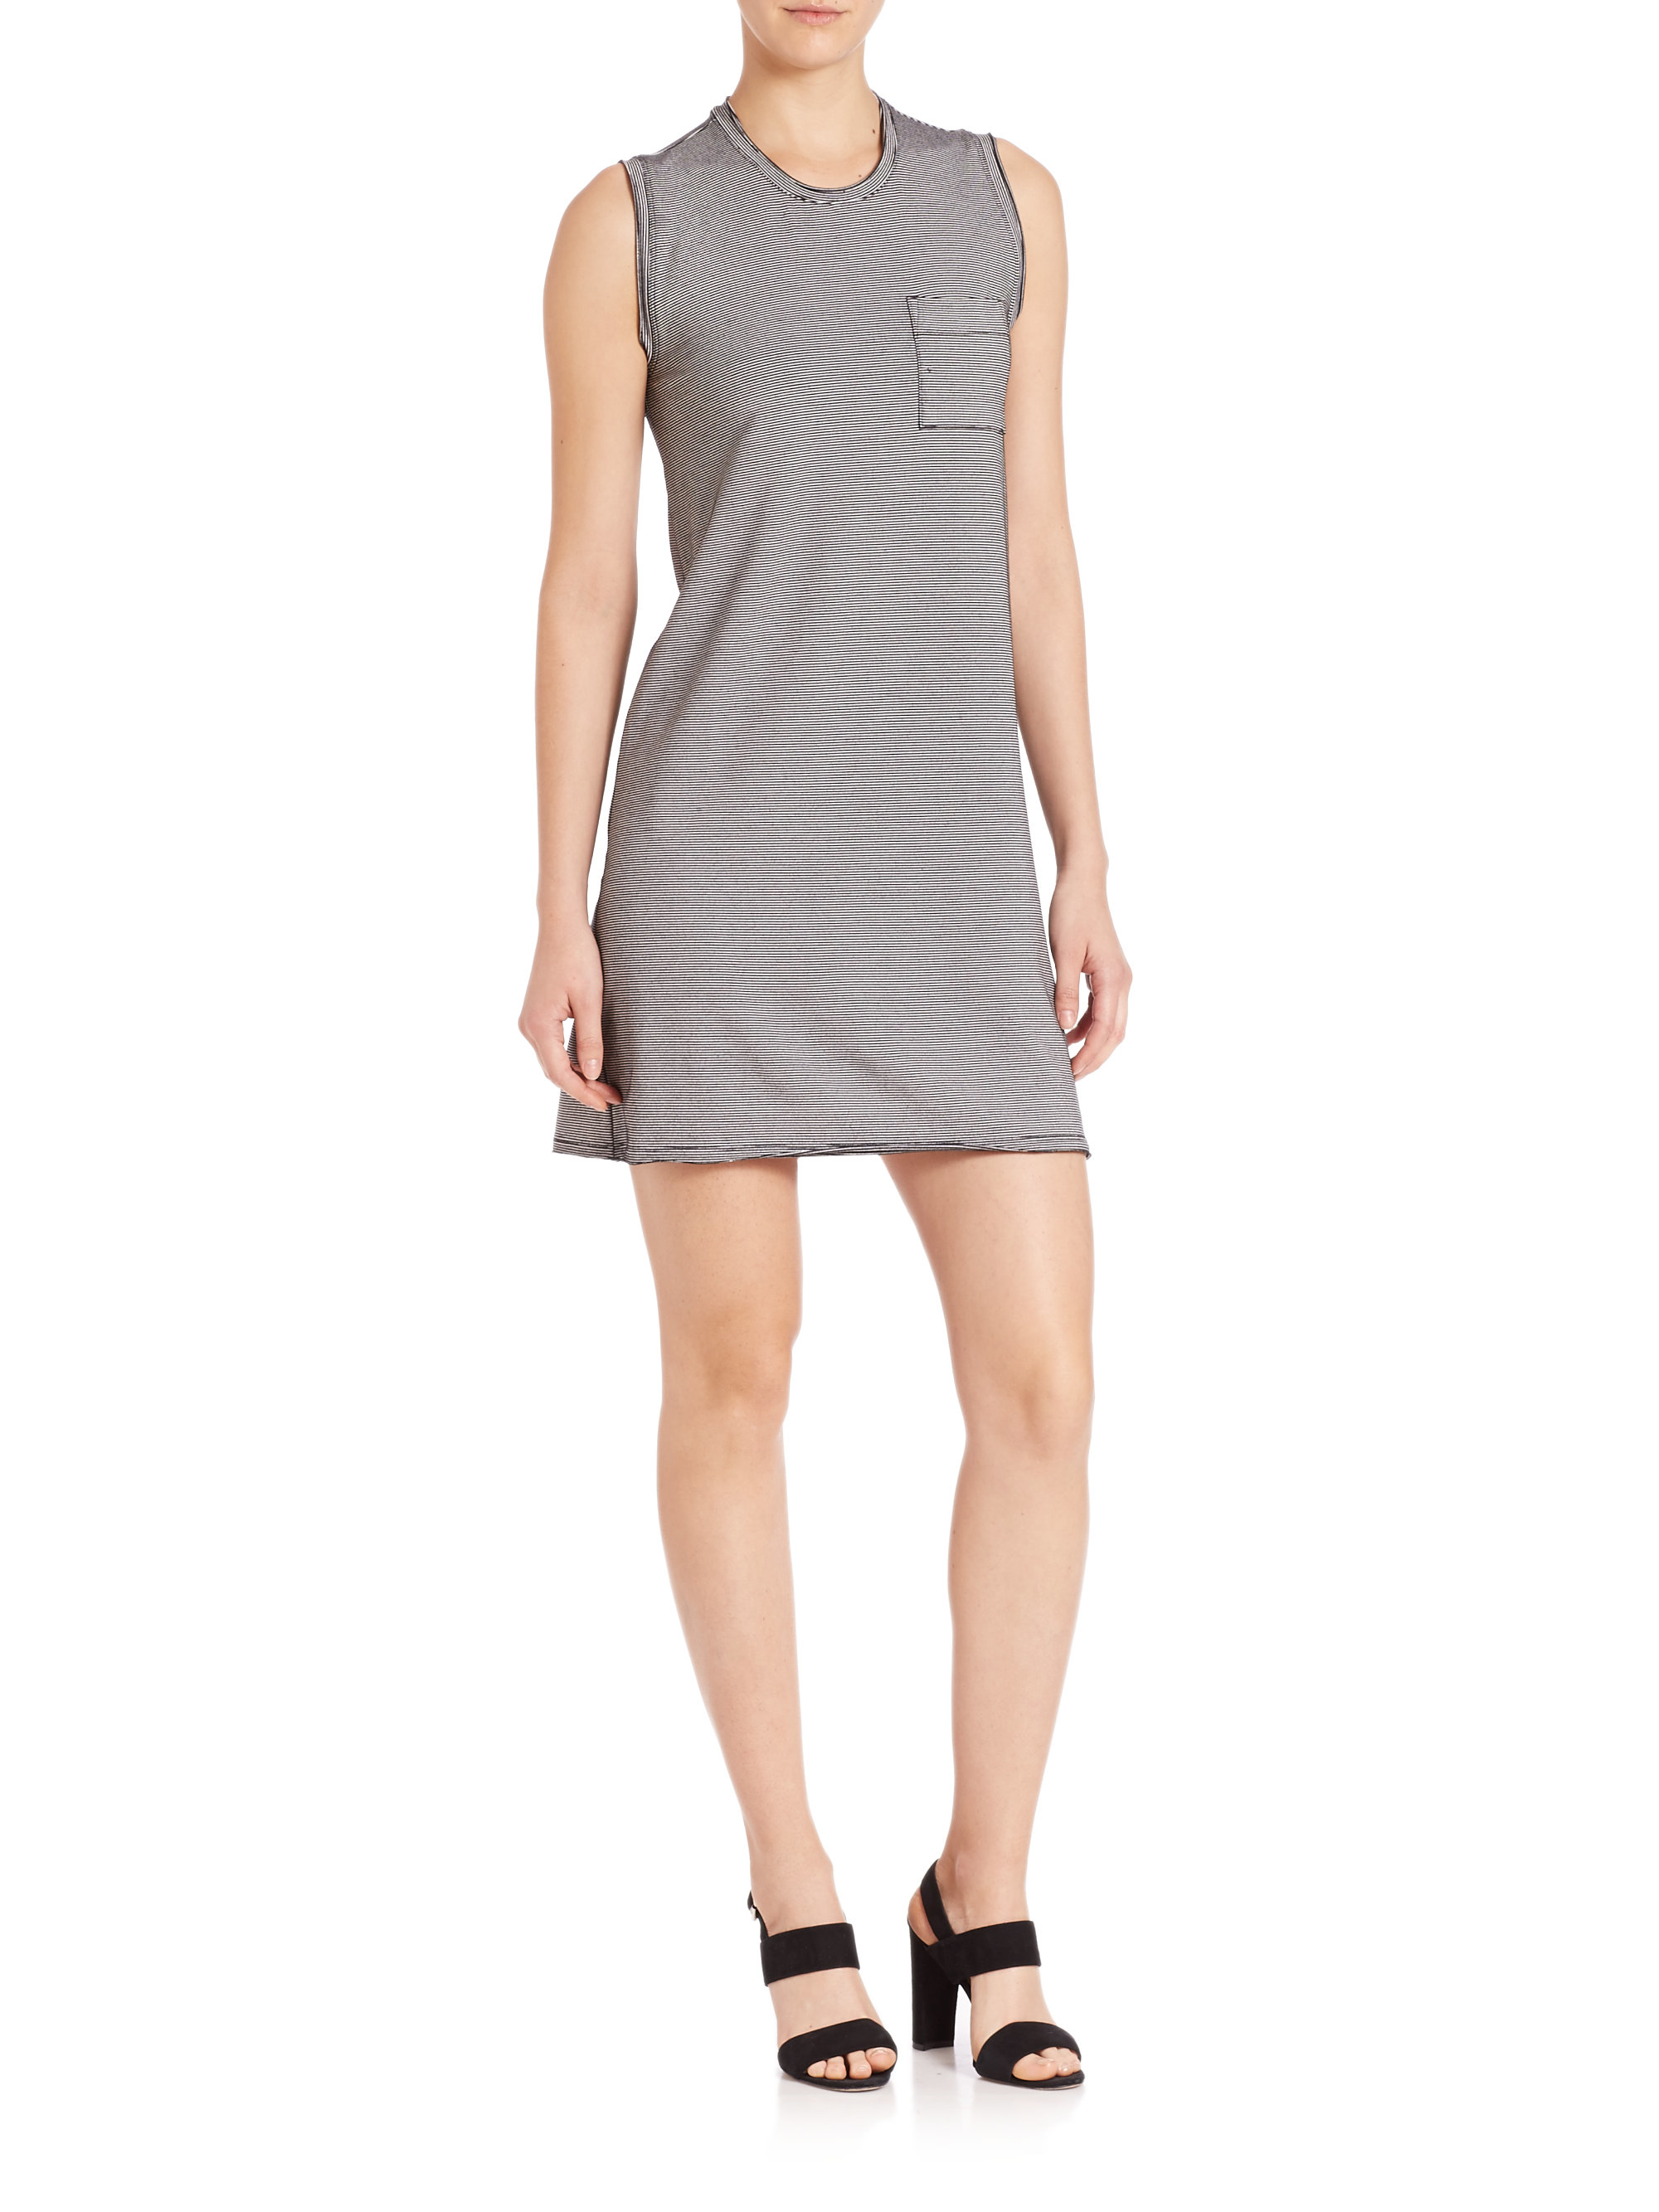 atm pocket tank dress in gray lyst. Black Bedroom Furniture Sets. Home Design Ideas